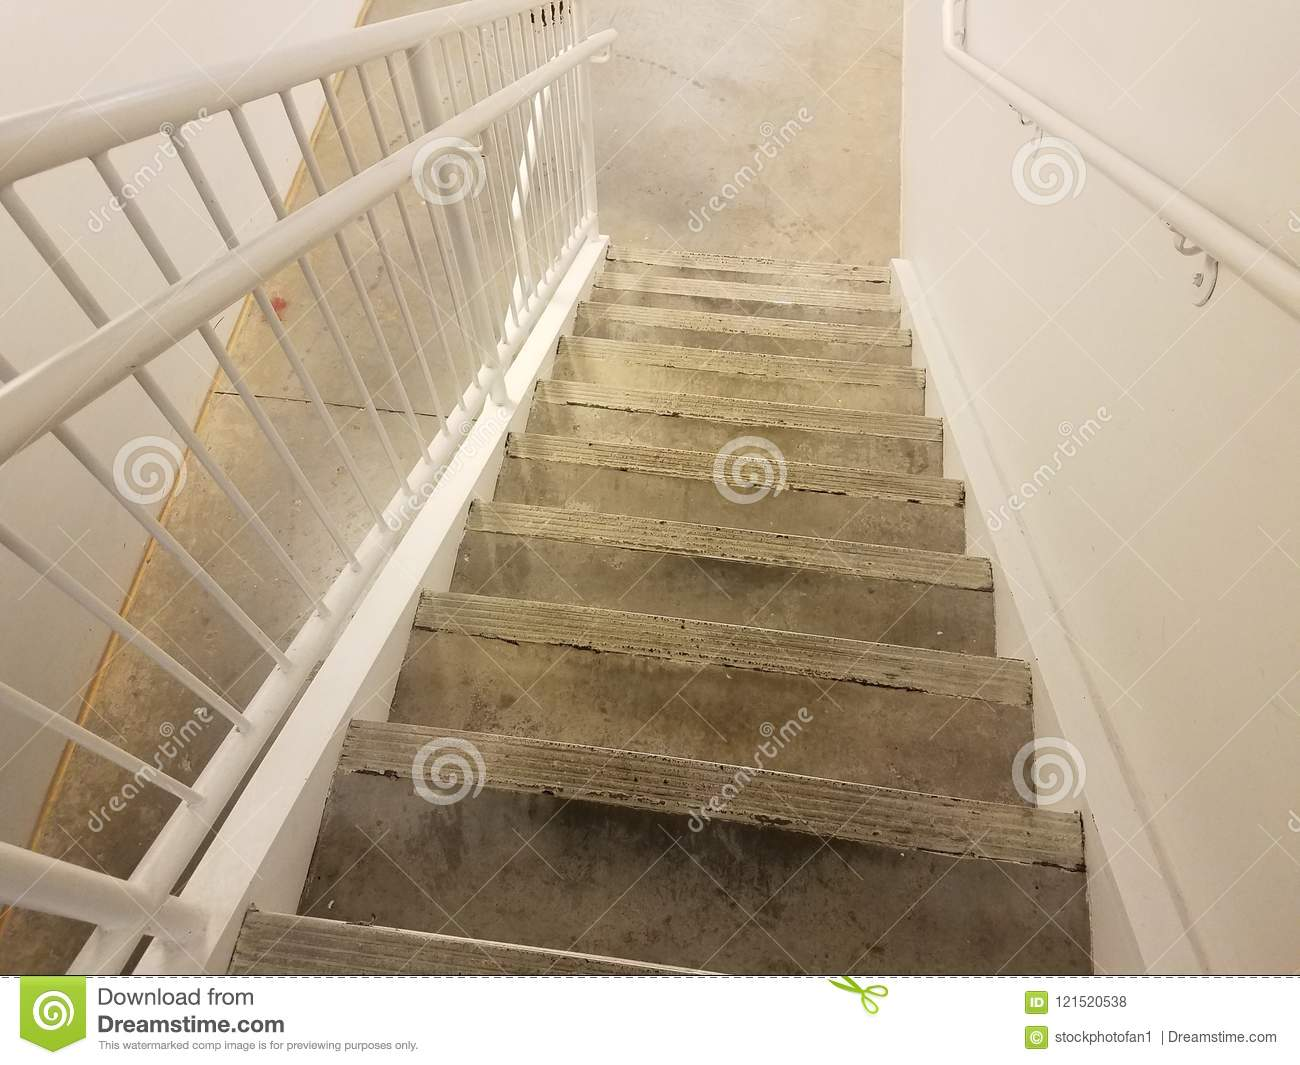 Download Dirty Cement Steps Or Stairs With White Railing Stock Photo    Image Of Grey,